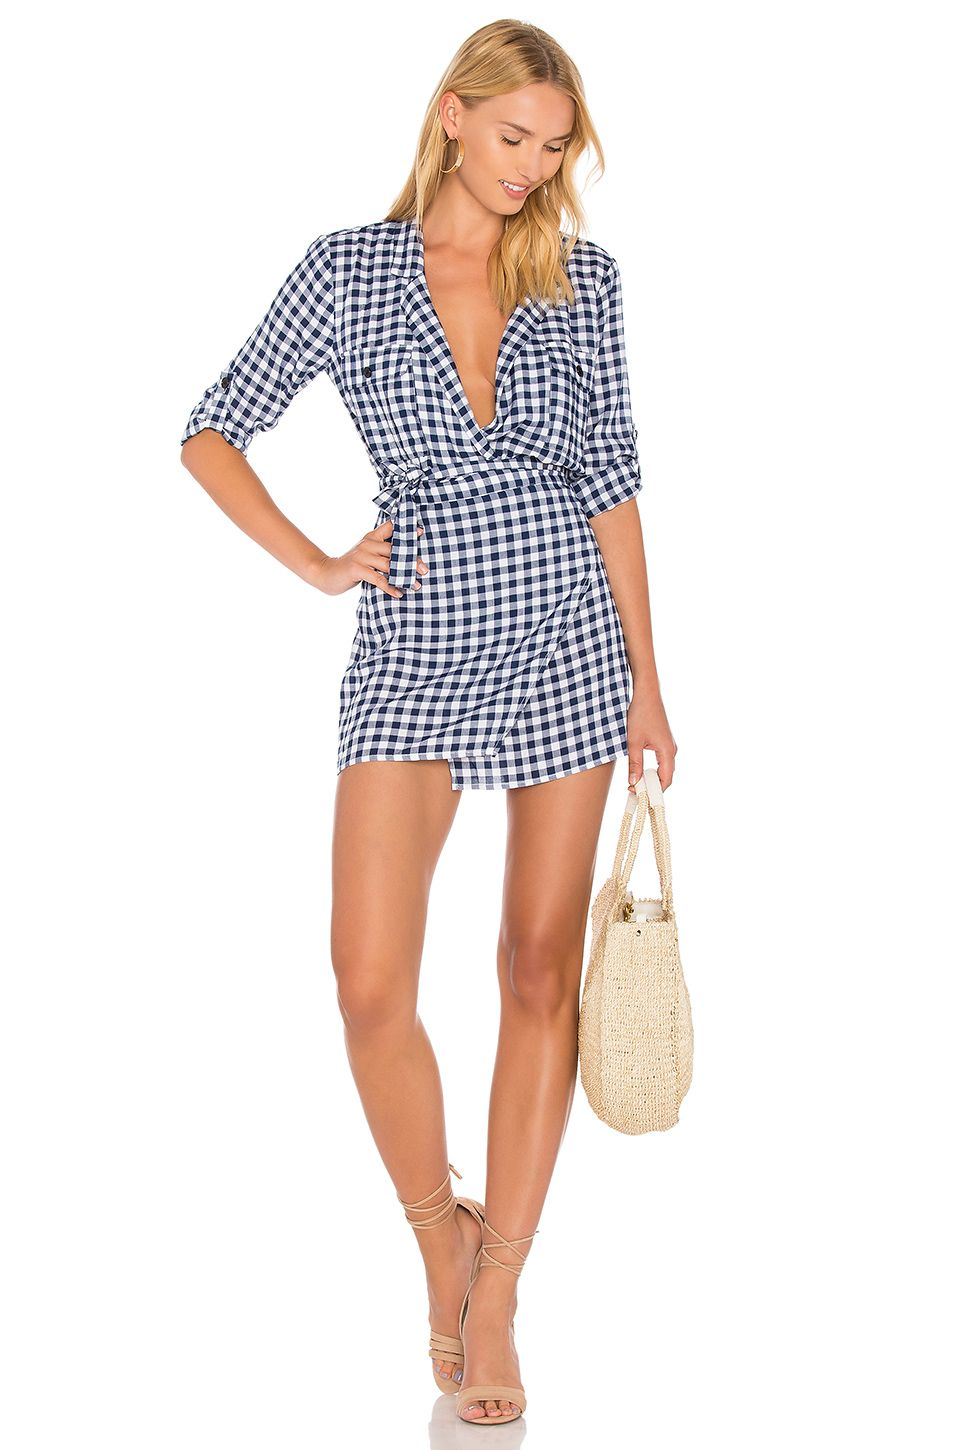 MAJORELLE x REVOLVE Beckett Dress in Oxford | Fashion in ...